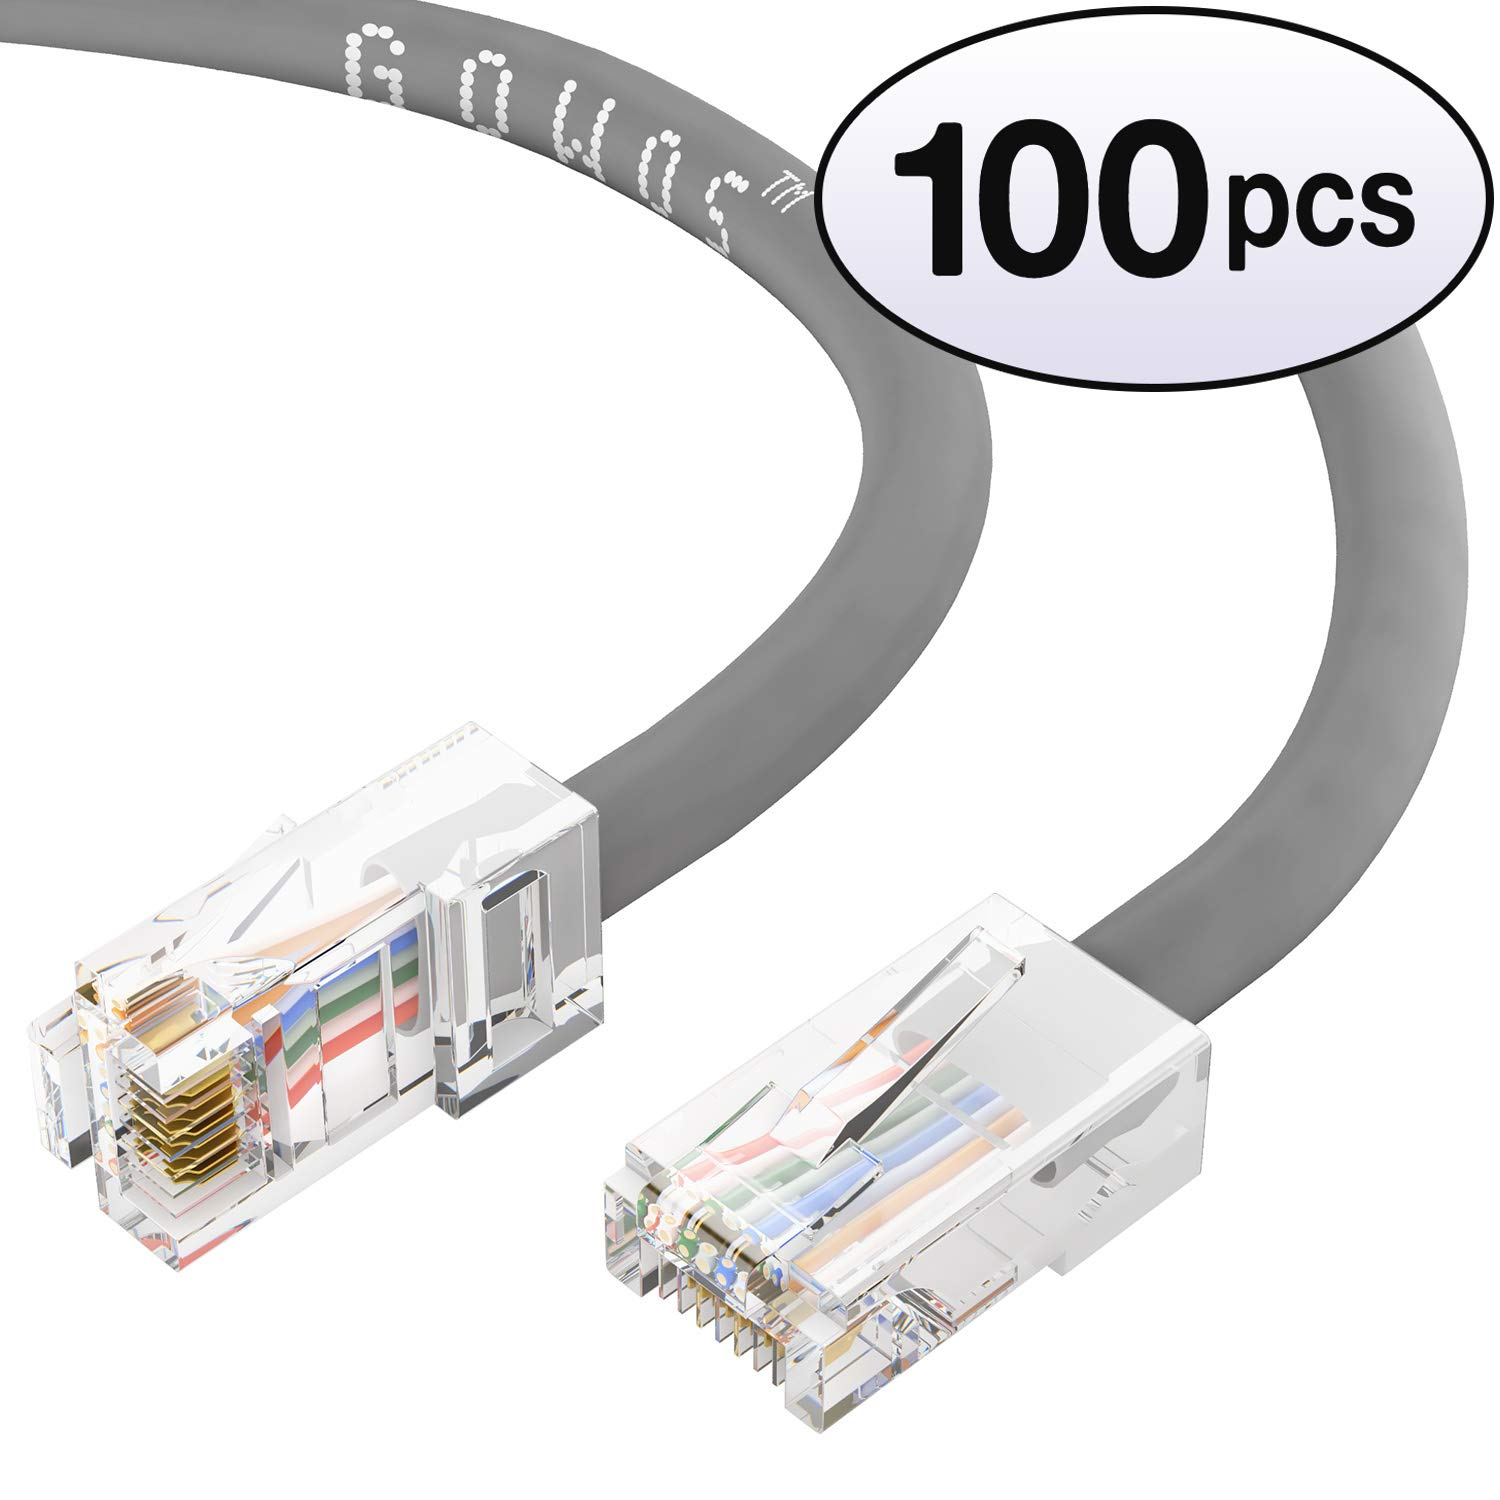 1Gigabit//Sec High Speed LAN Internet//Patch Cable 2-Pack - 2 Feet GOWOS Cat5e Ethernet Cable 24AWG Network Cable with Gold Plated RJ45 Non-Booted Connector Gray 350MHz